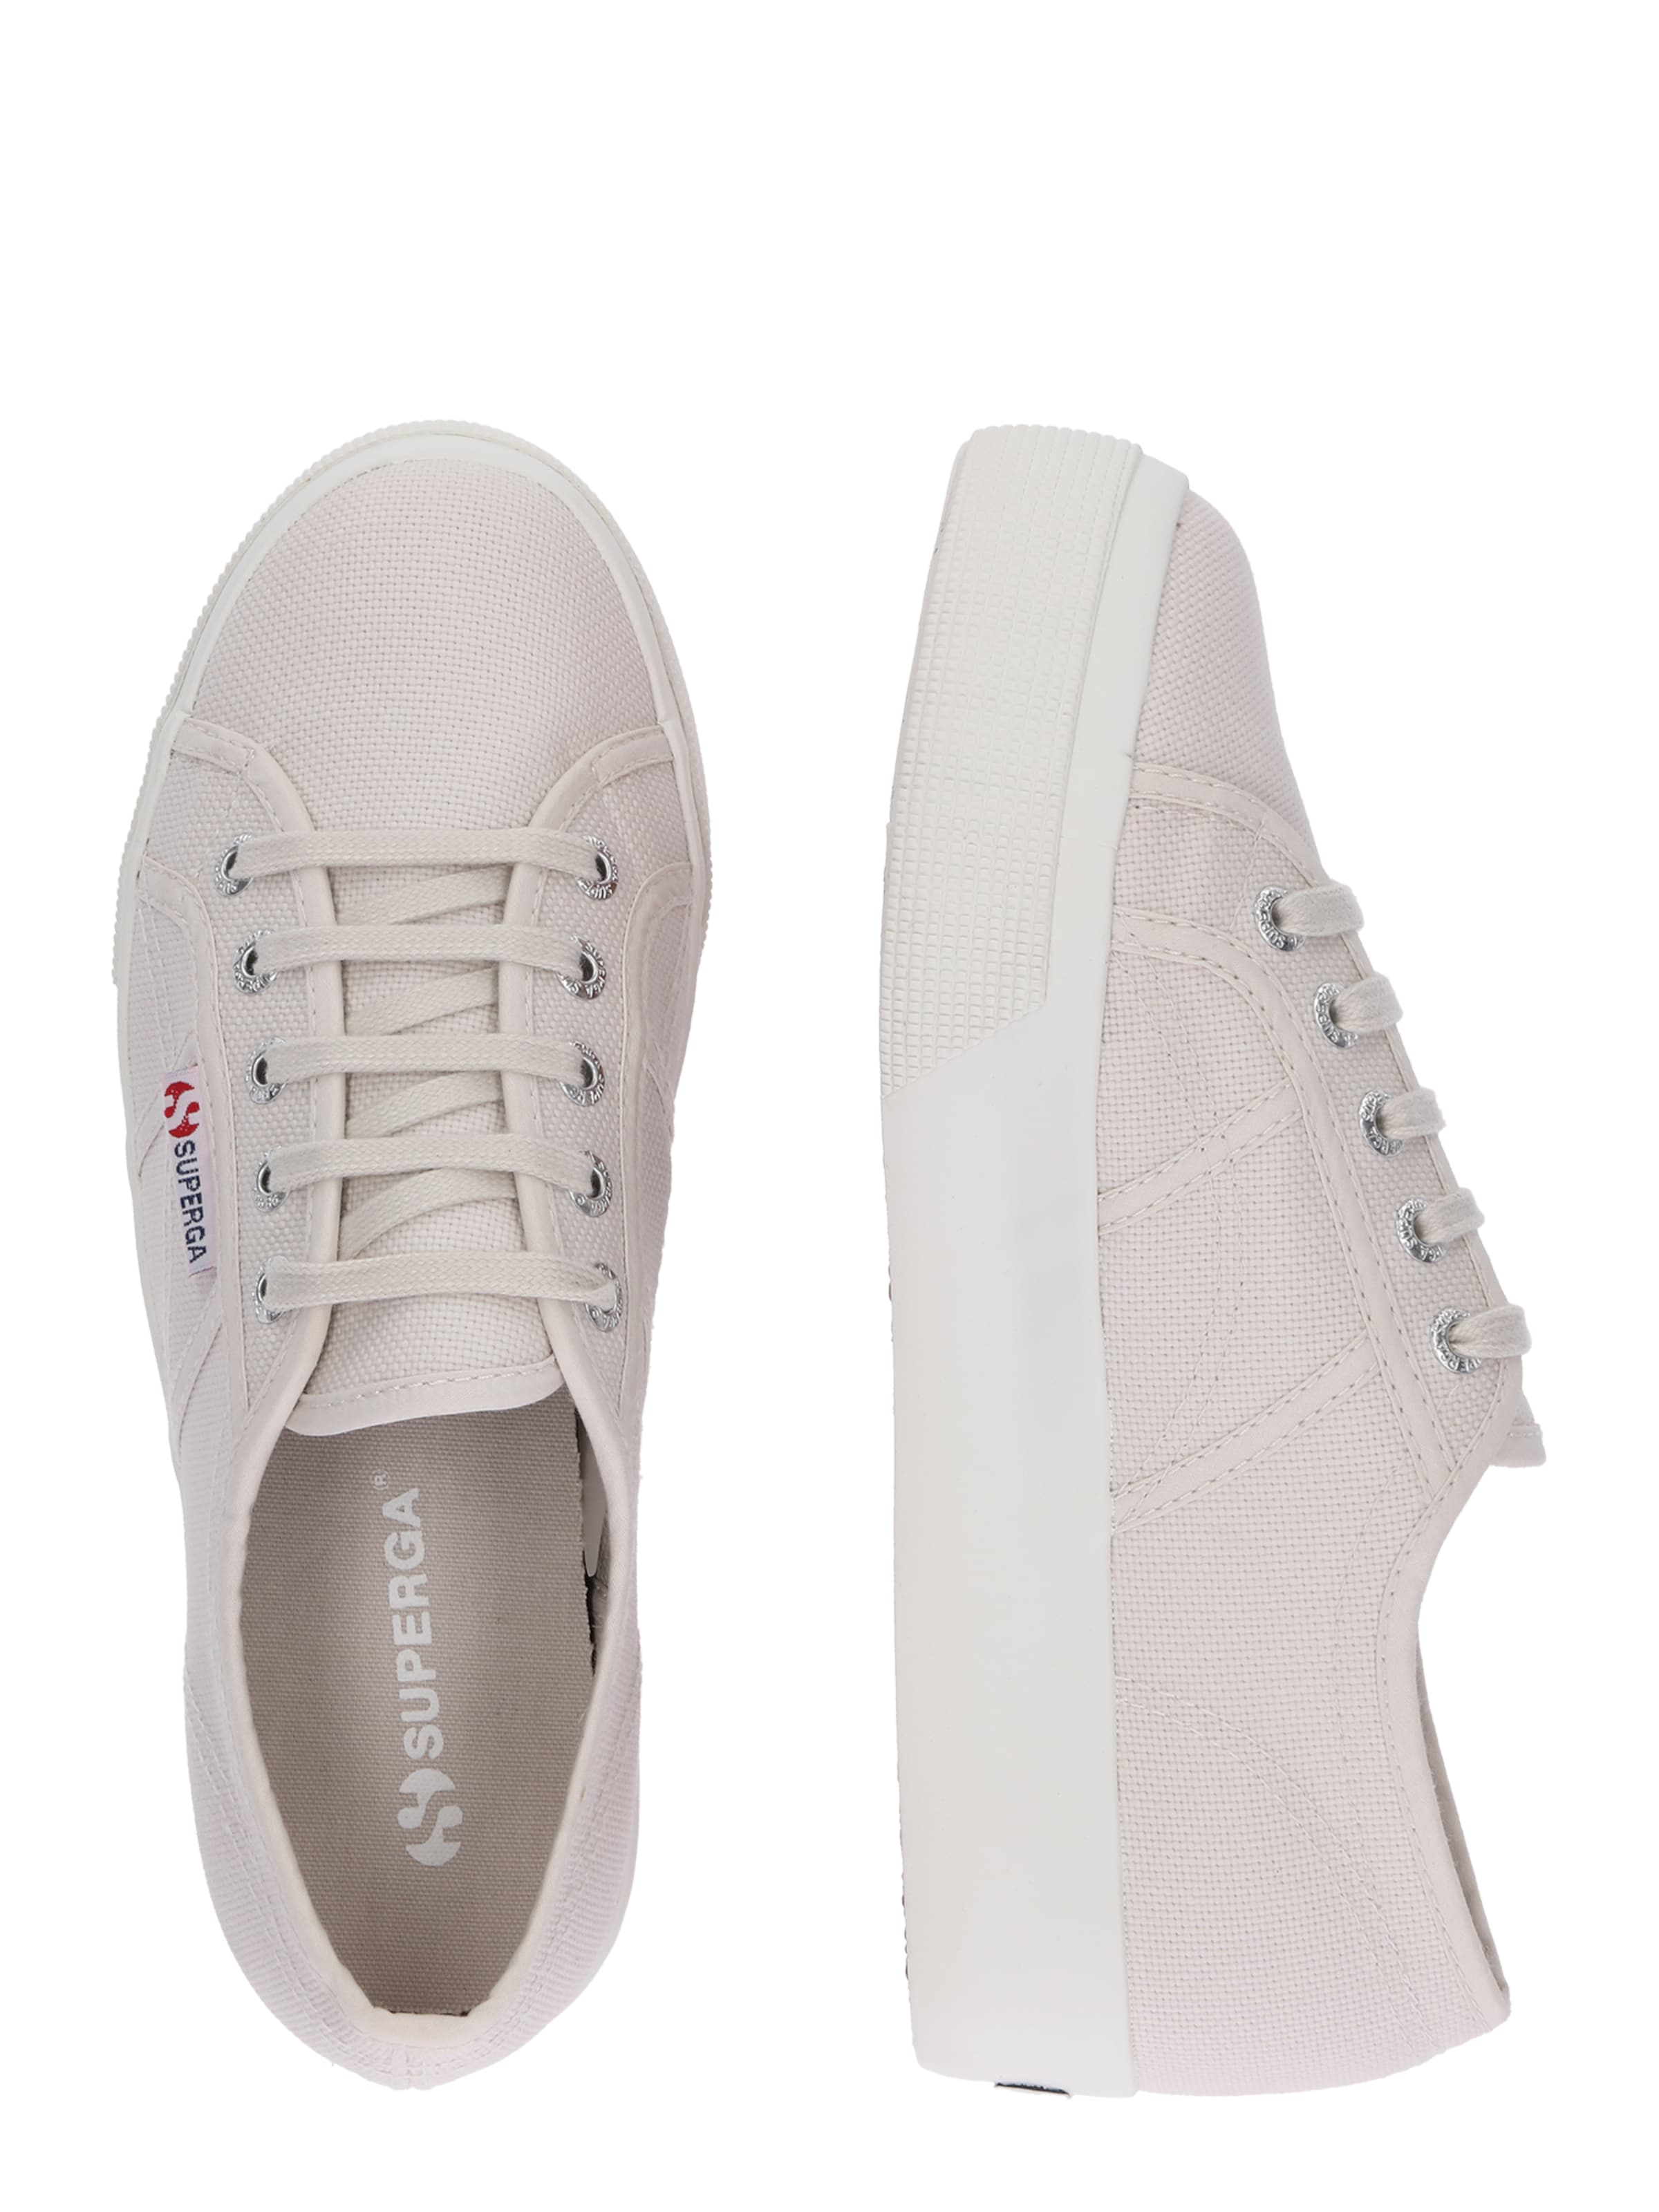 Superga Superga In Hellgrau Low Sneaker Sneaker Low Superga Low Hellgrau In Sneaker PkuTwXZlOi